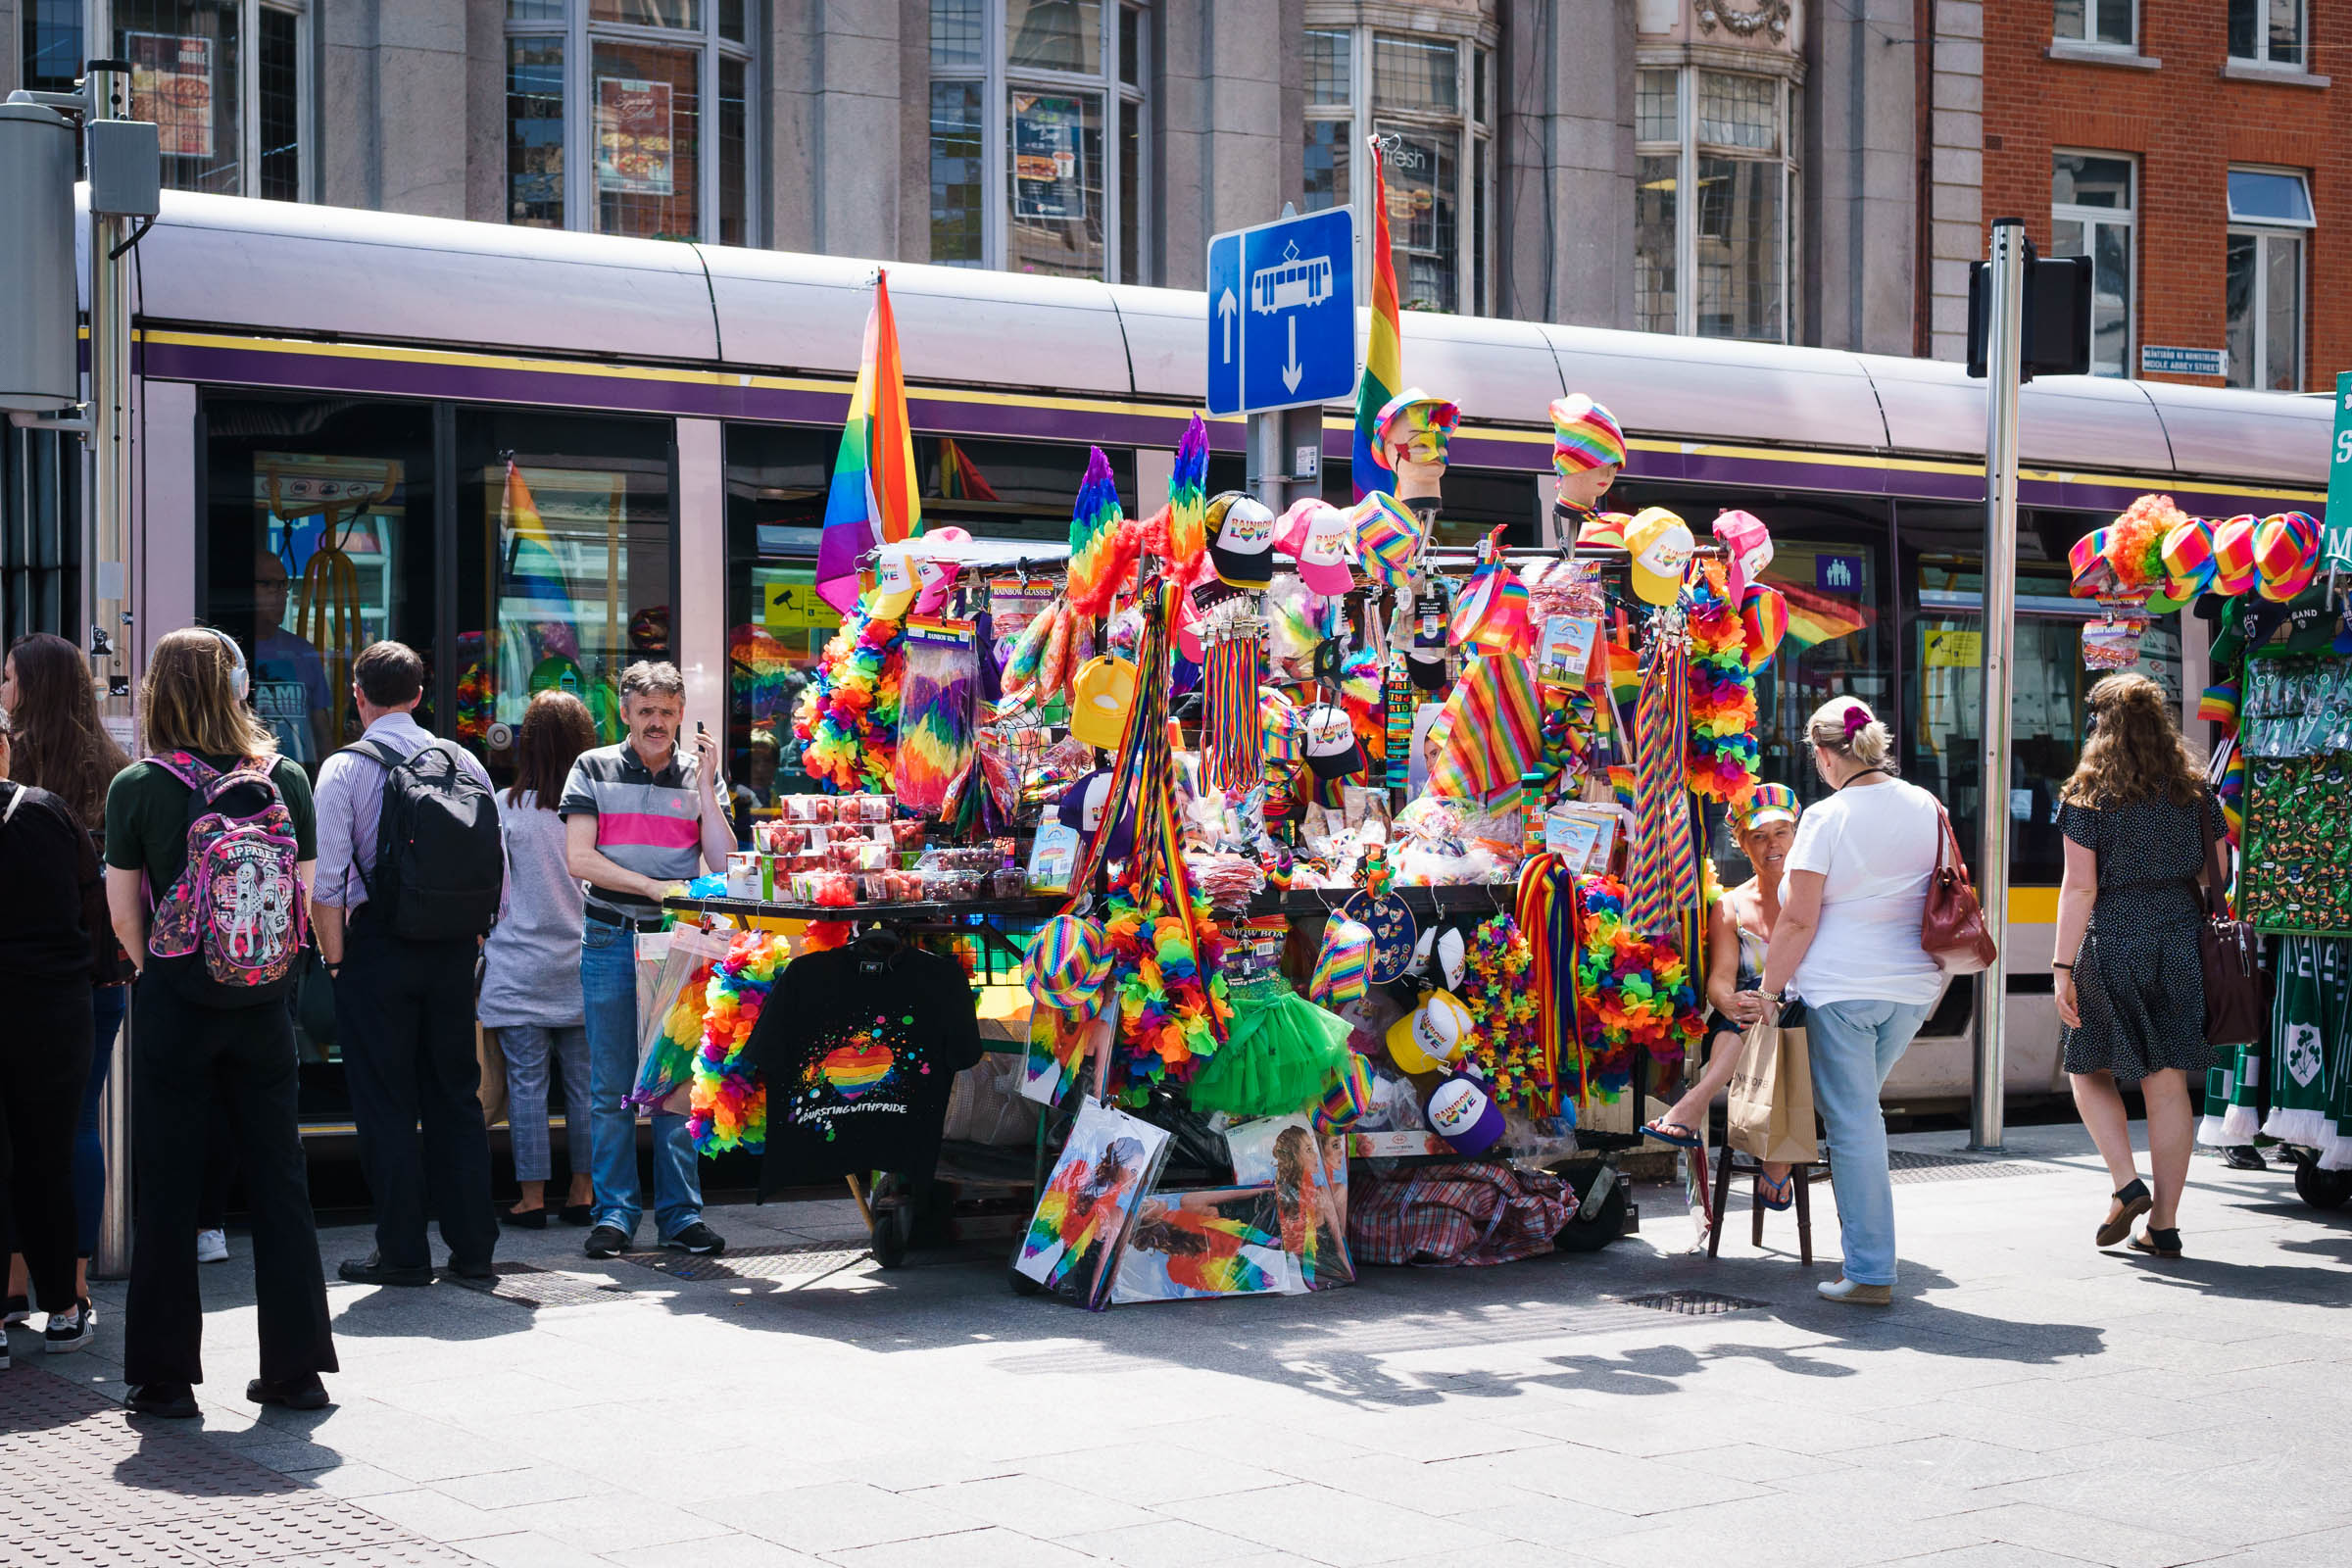 Vendors selling merchandise for the Pride Parade